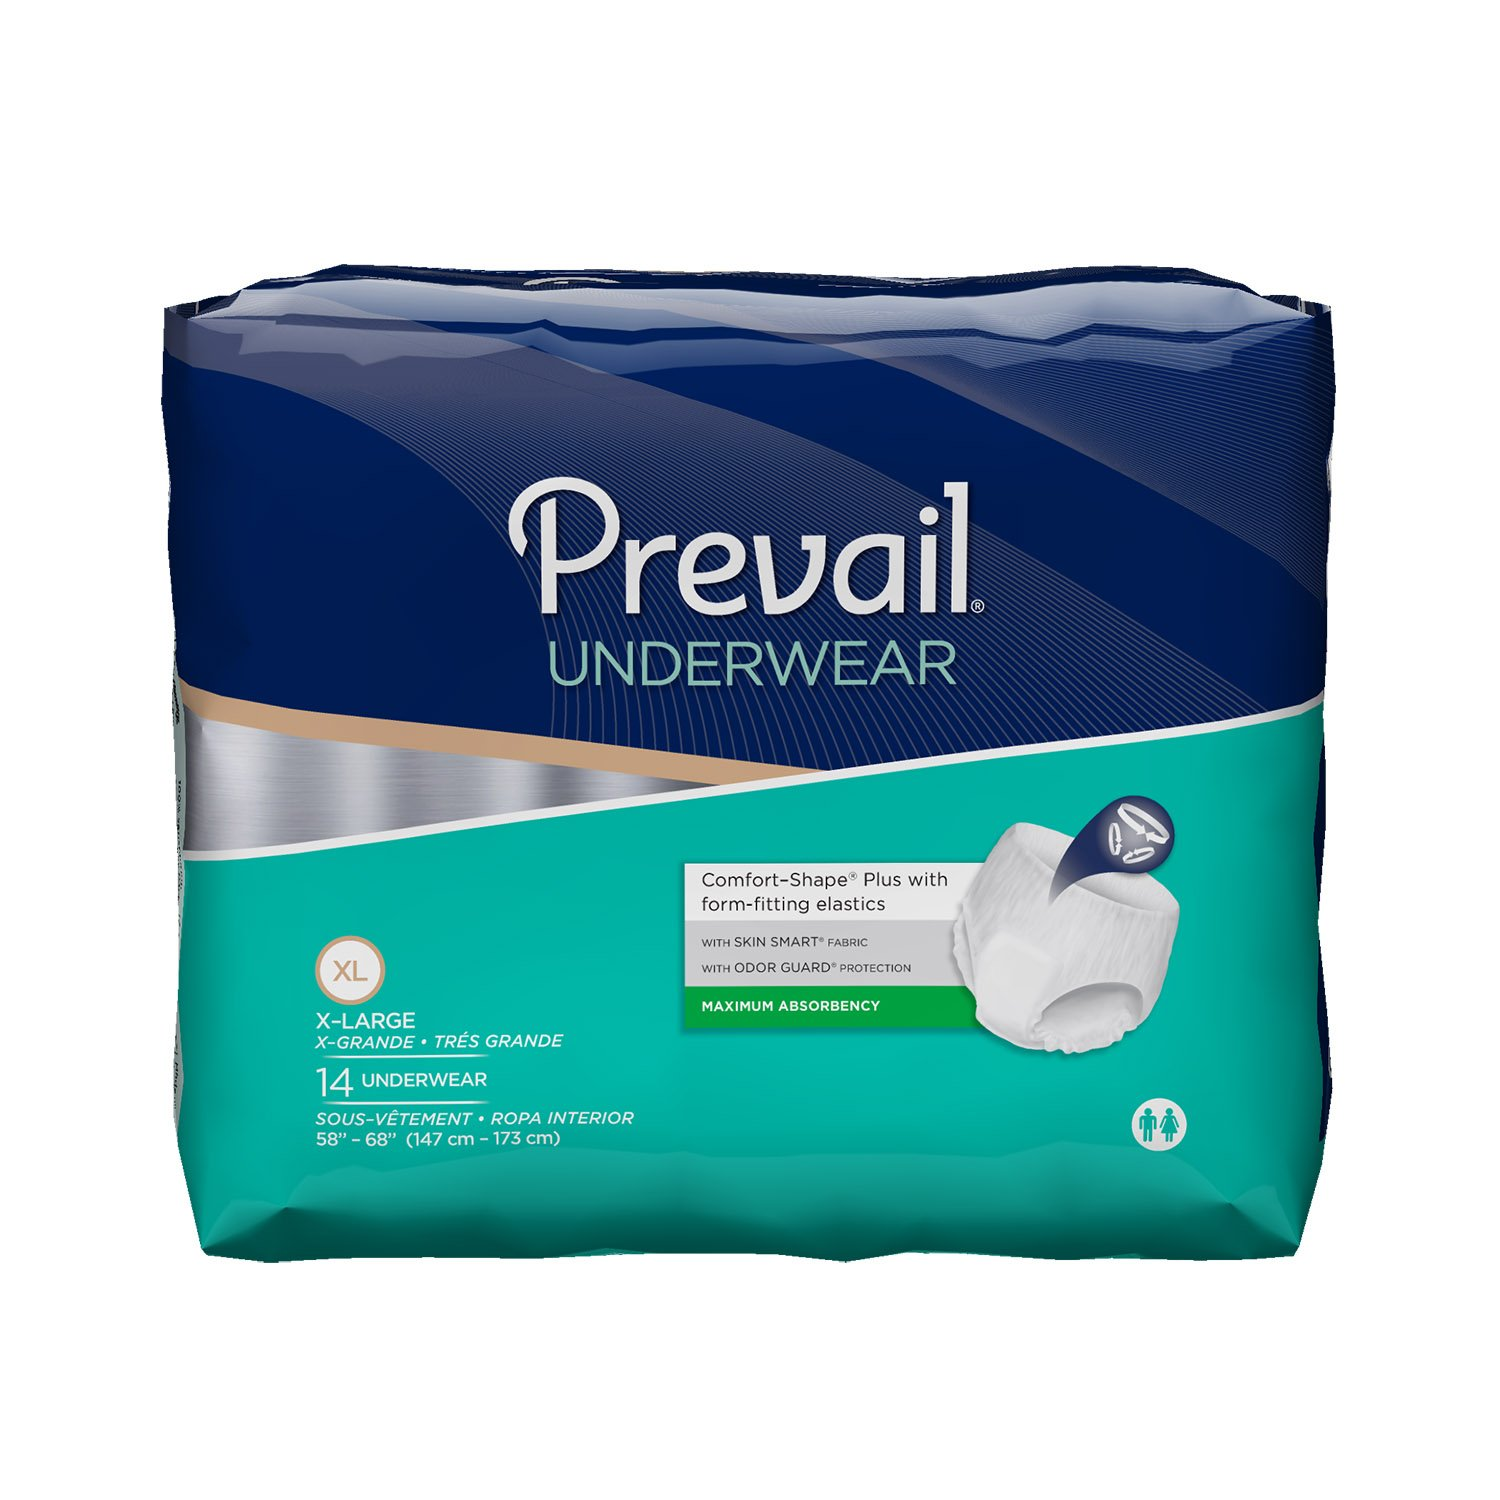 Amazon.com: Prevail Maximum Absorbency Underwear, Large, Pack/16: Health & Personal Care